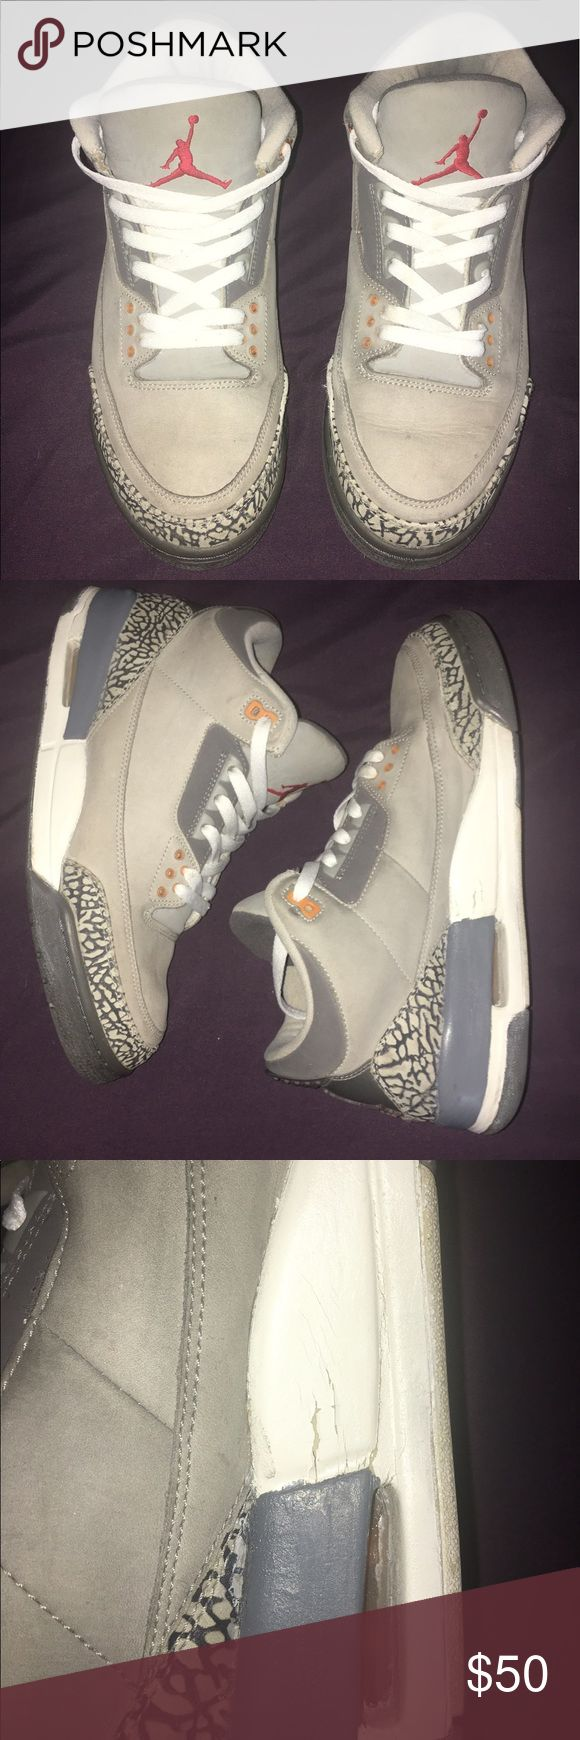 Retro Jordan 3 sneakers Retro Jordan 3's. Used but good condition. Flaws shown in picture. Jordan Shoes Sneakers